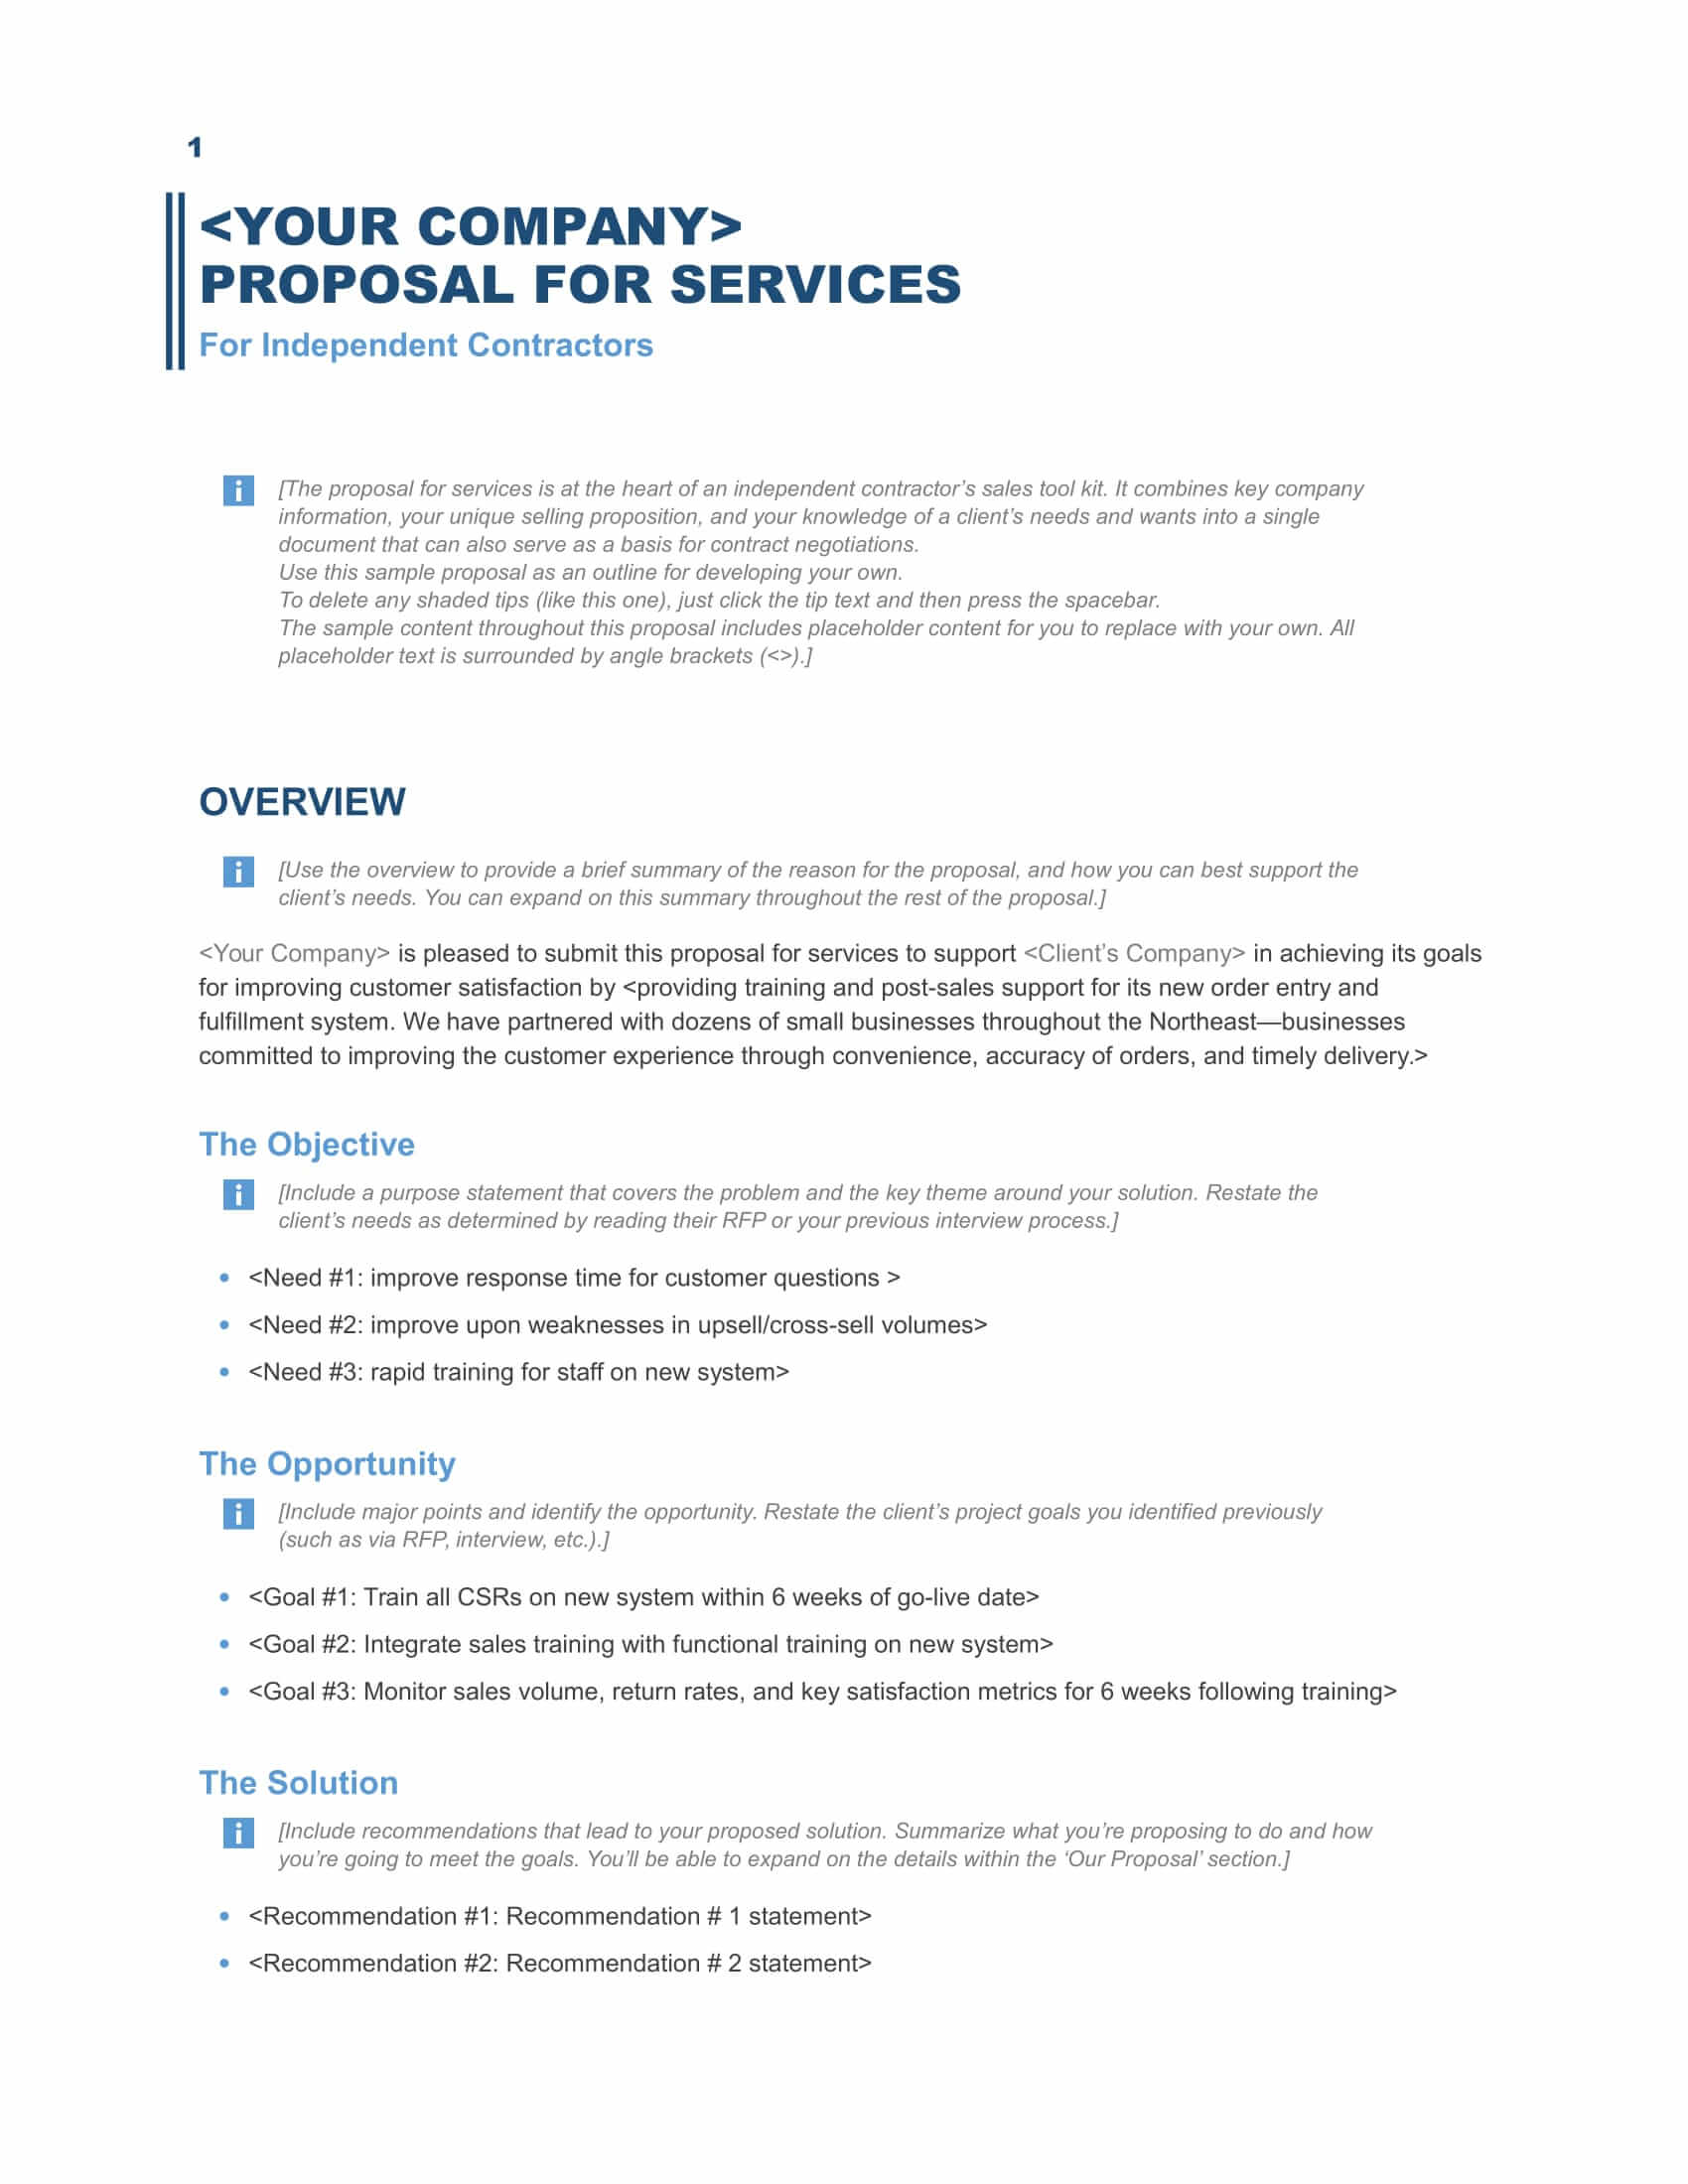 Download a free business proposal template formfactory search friedricerecipe Choice Image